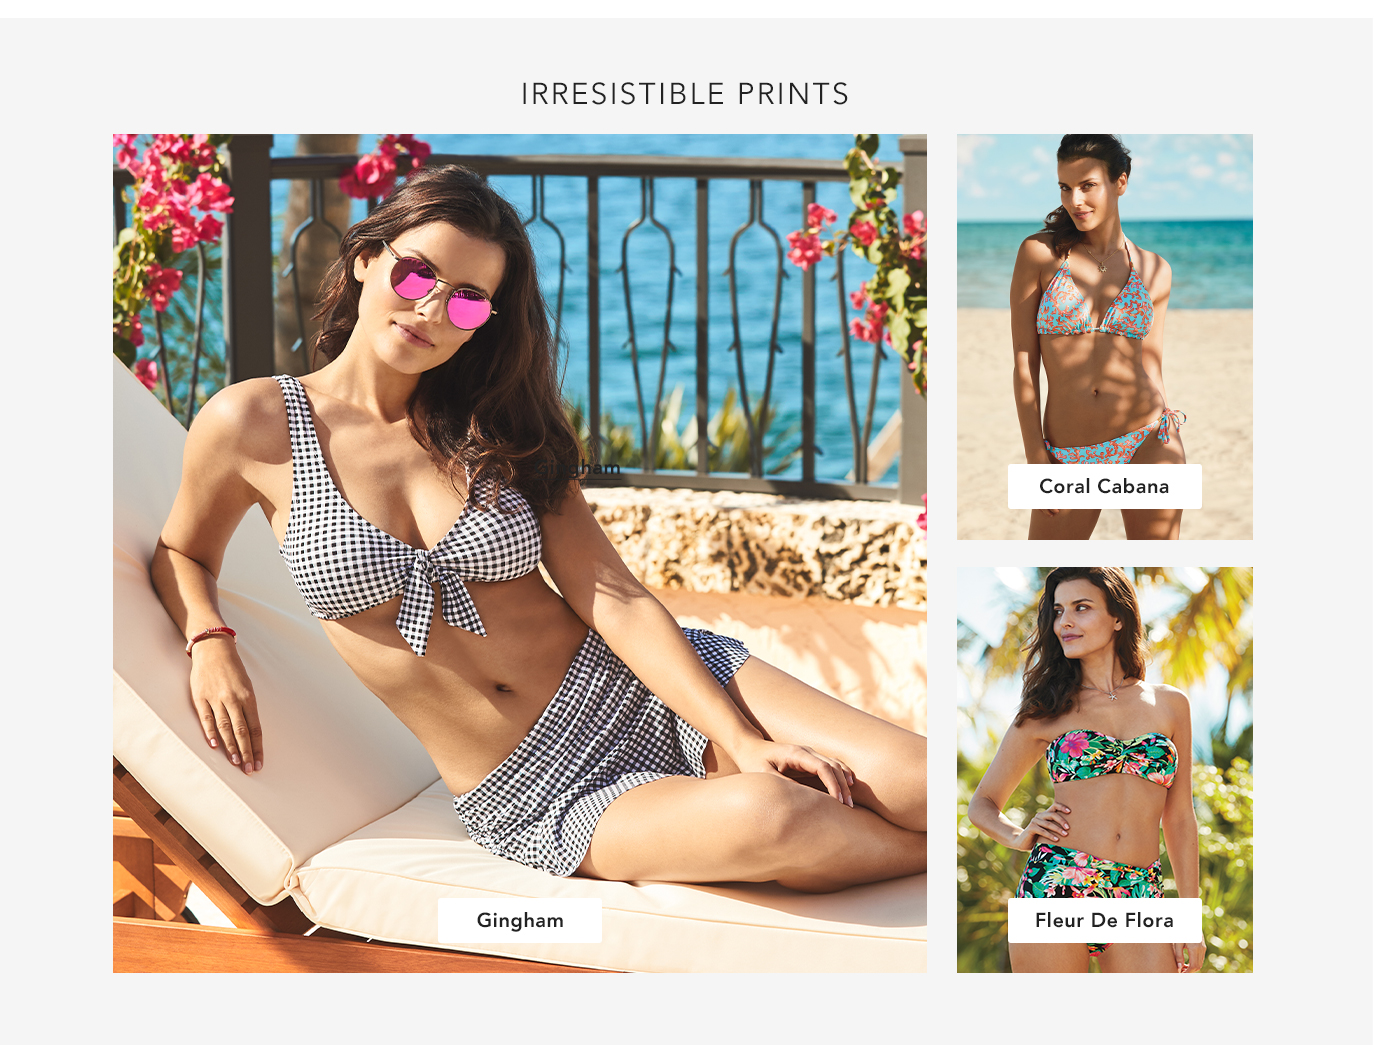 Irresistible Prints